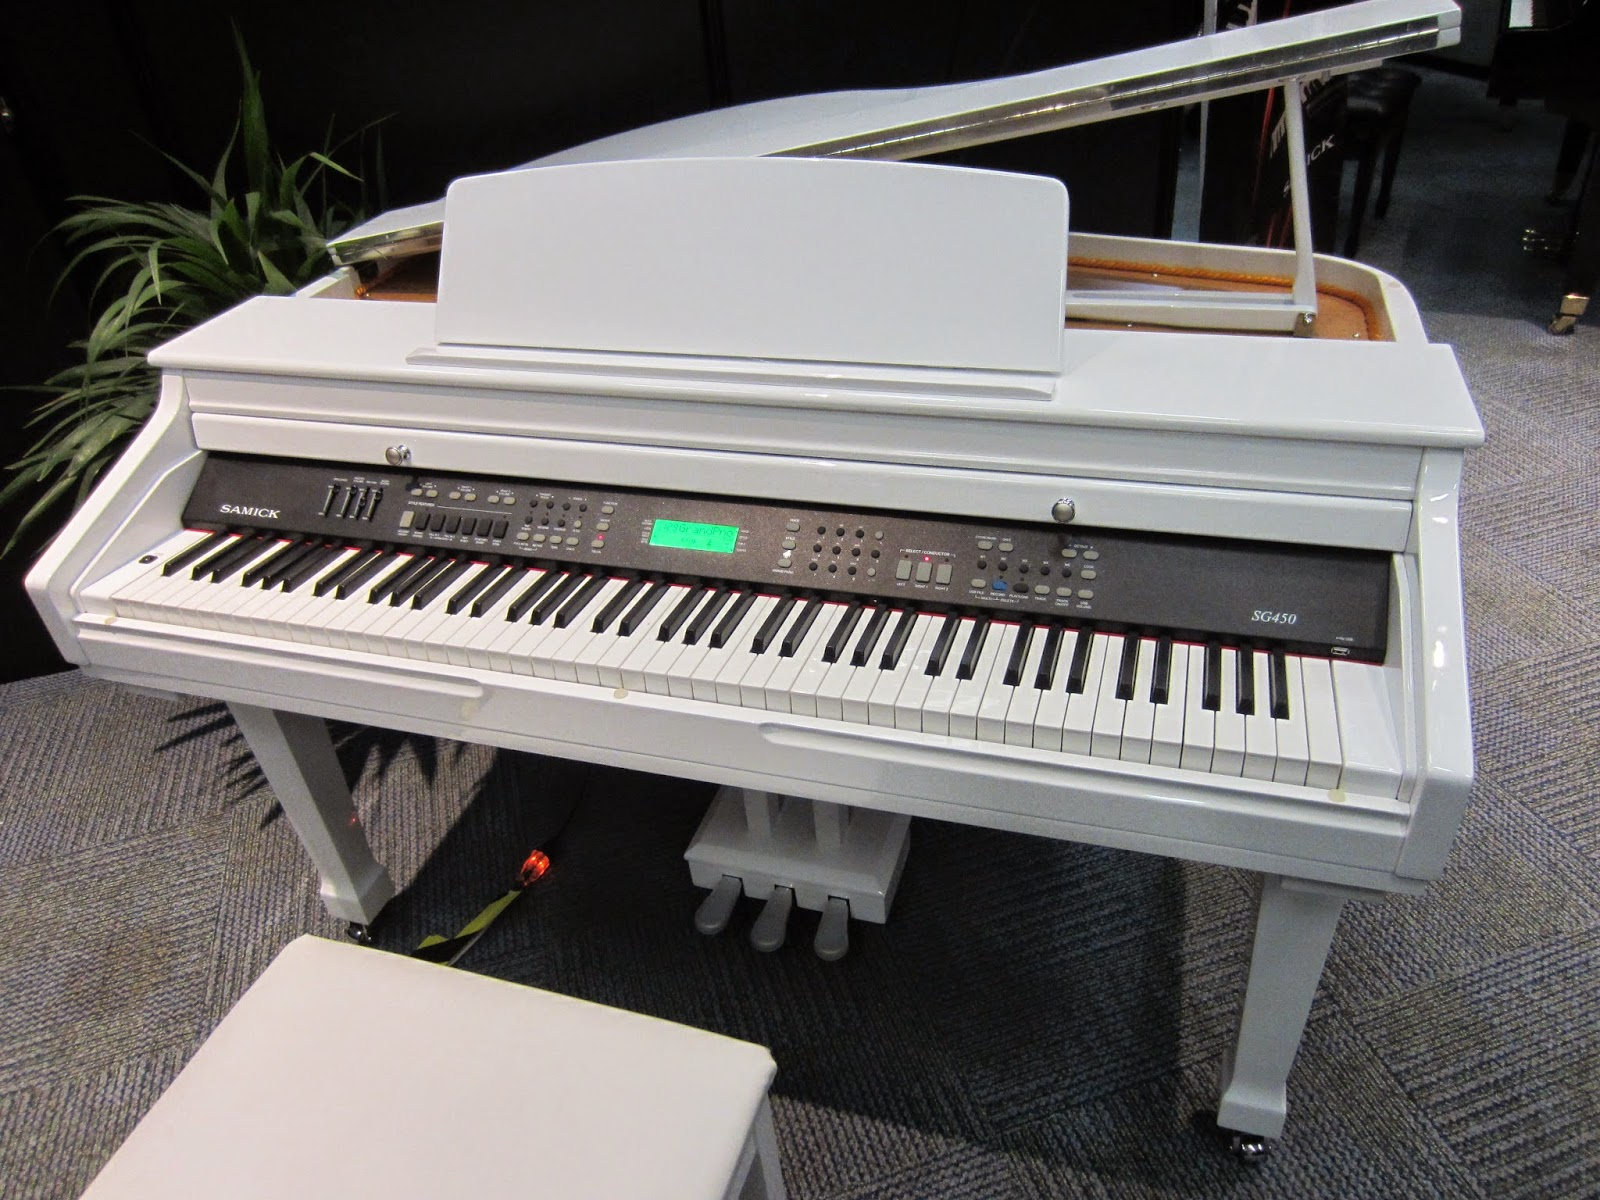 Samick SG450 digital piano